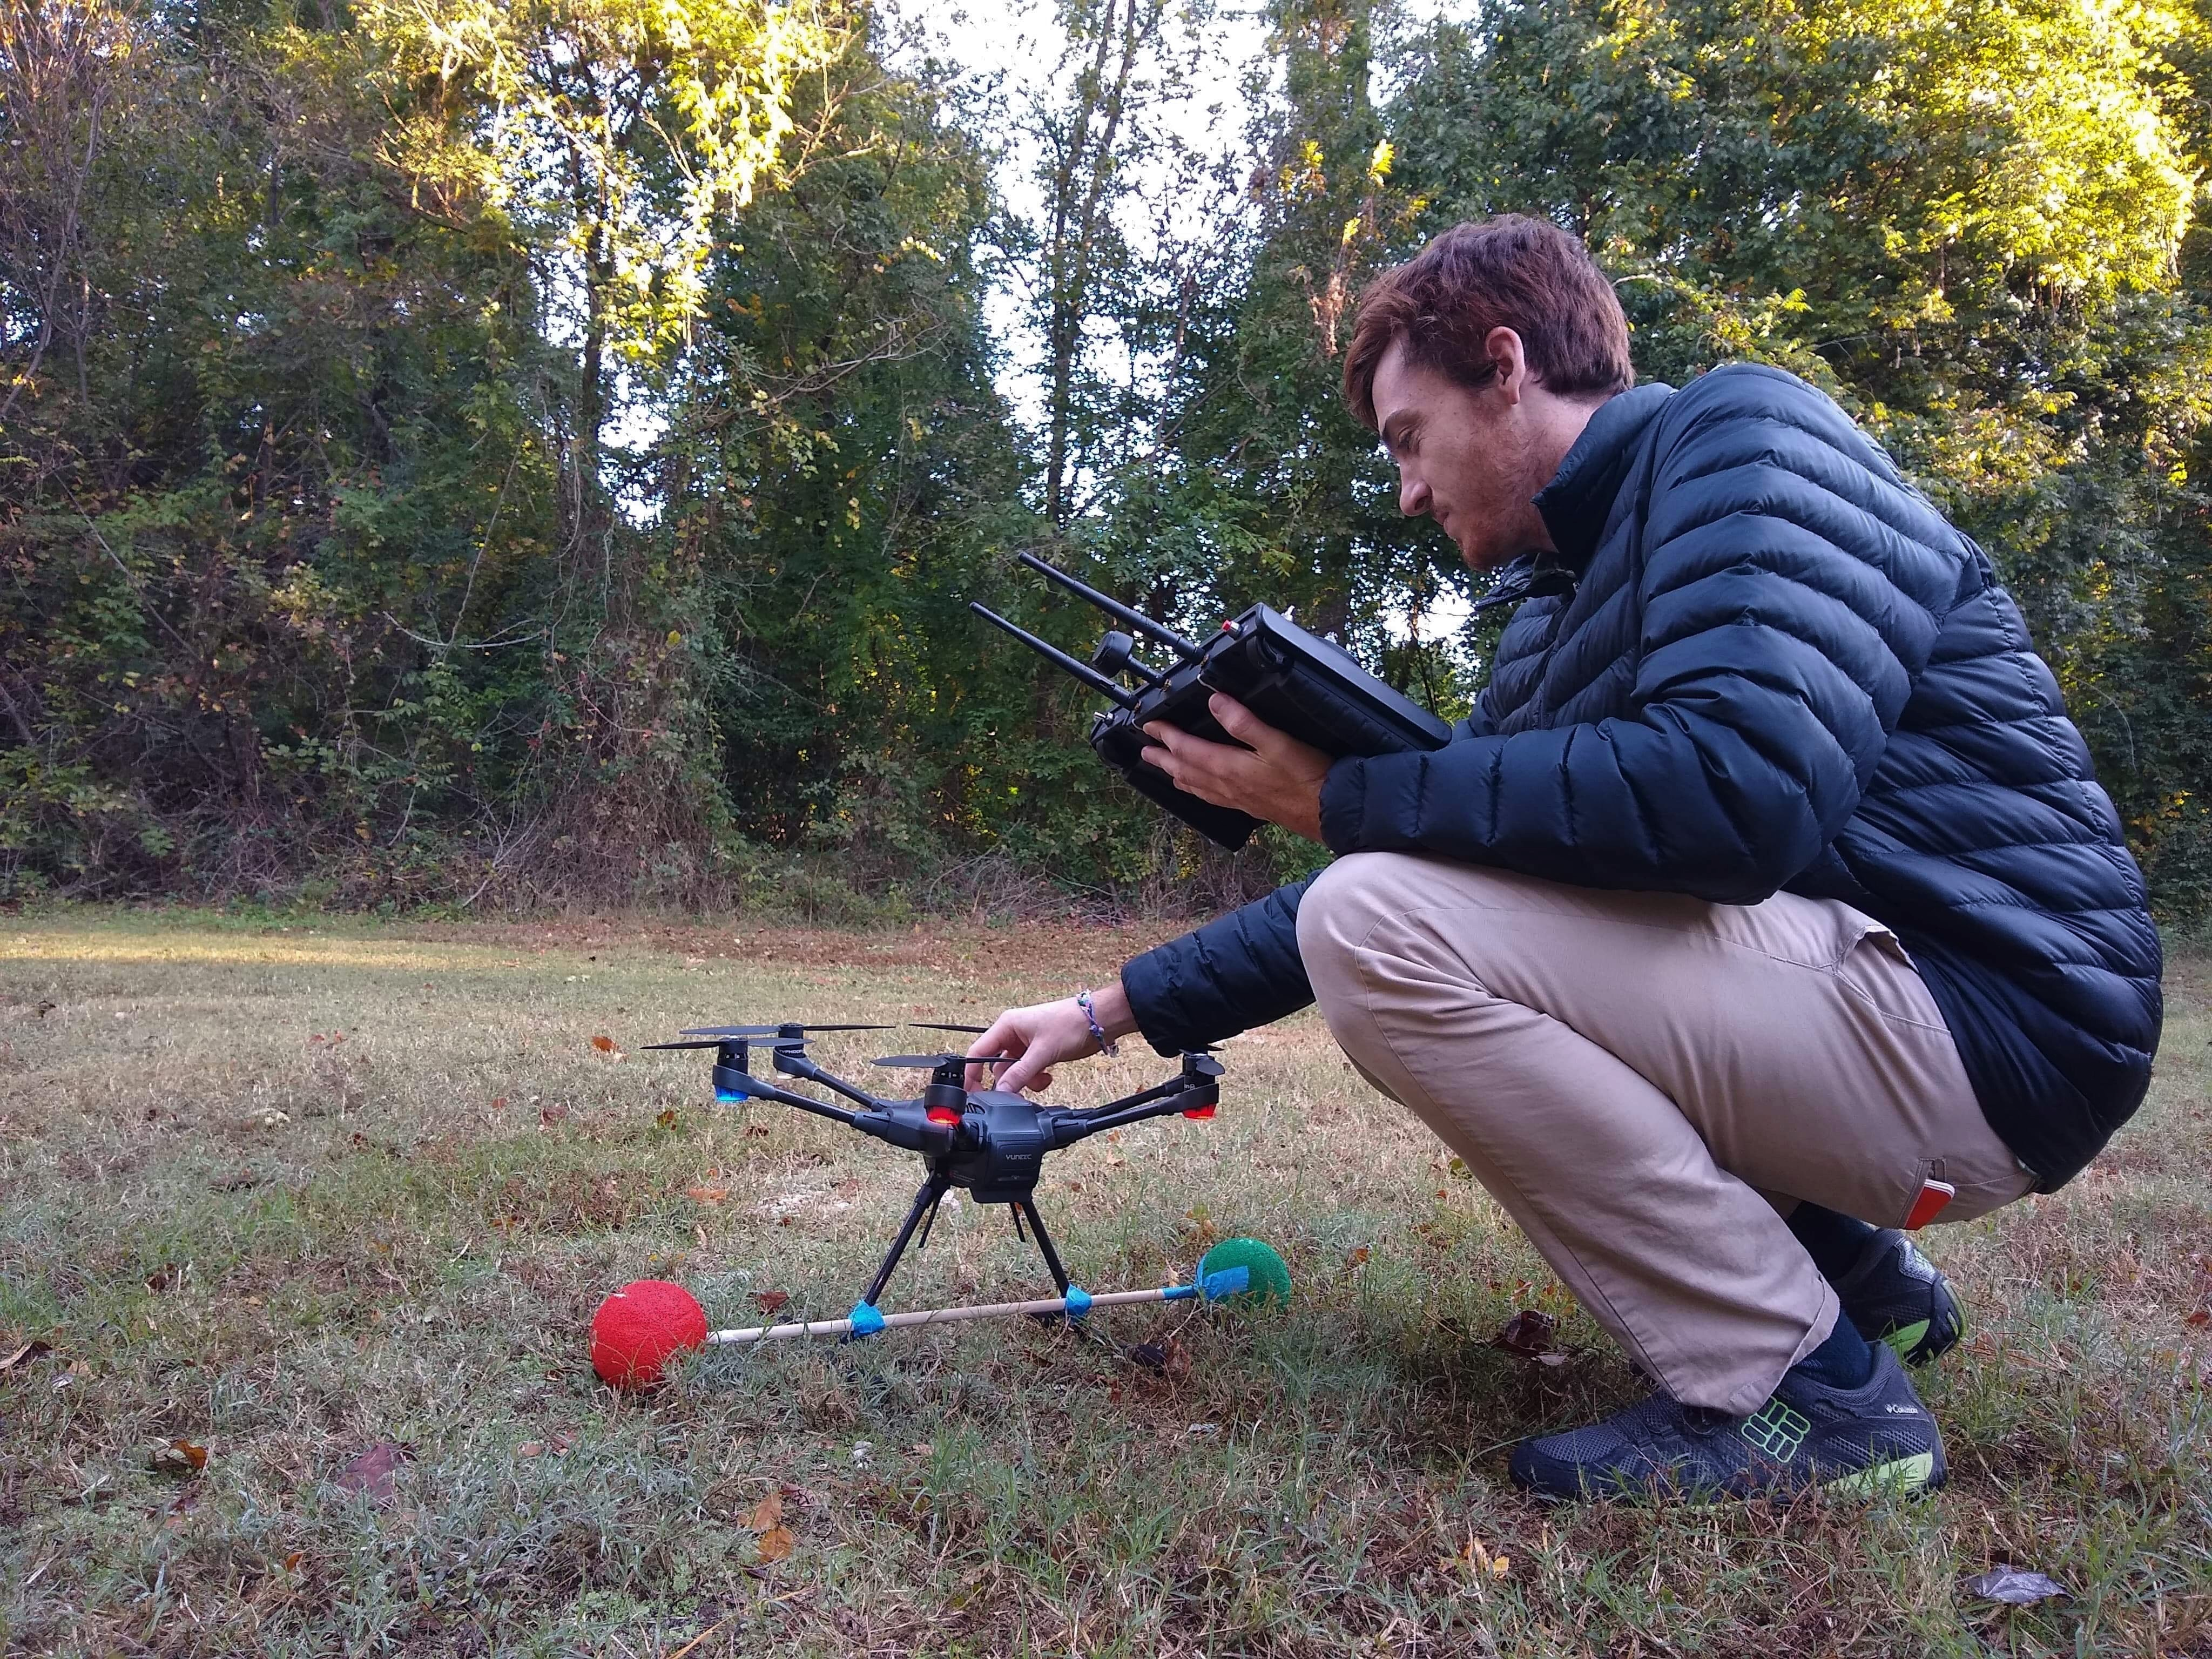 A scientist setting up a drone camera to track birds in flight